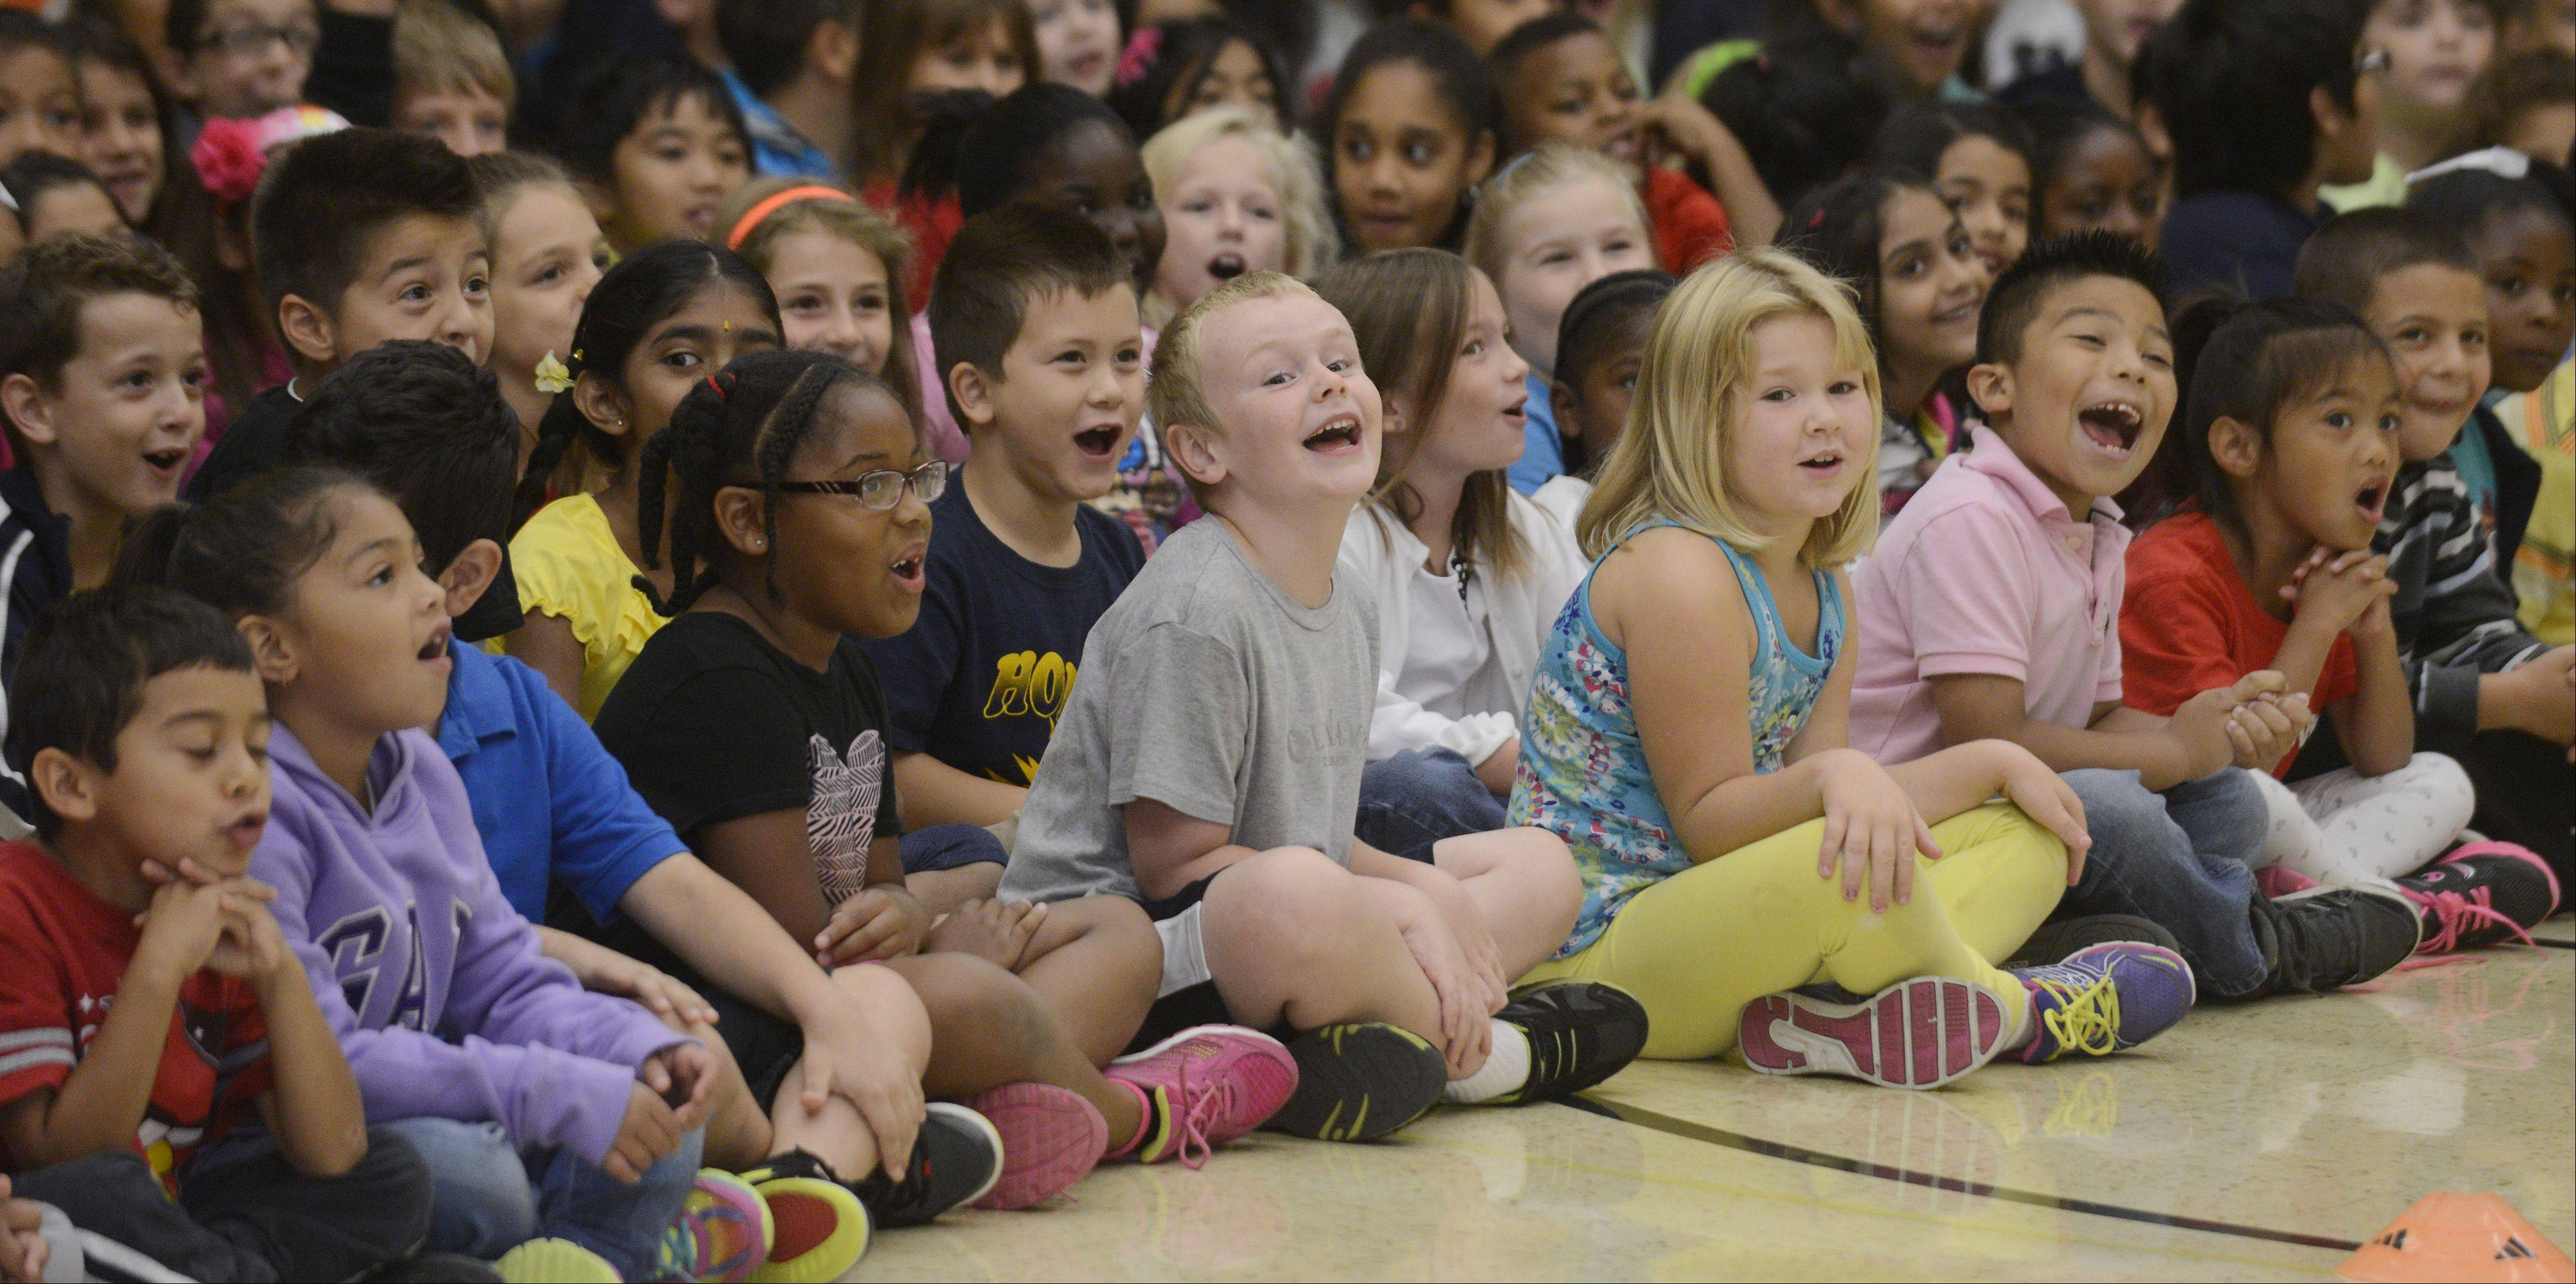 JOE LEWNARD/jlewnard@dailyherald.comStudents watch as America's Got Talent semifinalist Matt Wilhelm performs stunts on his BMX bike for an assembly at Horizon Elementary school in Hanover Park. In addition to performing the stunts, Wilhelm talked to the students about bullying, perseverance, bike safety and character.